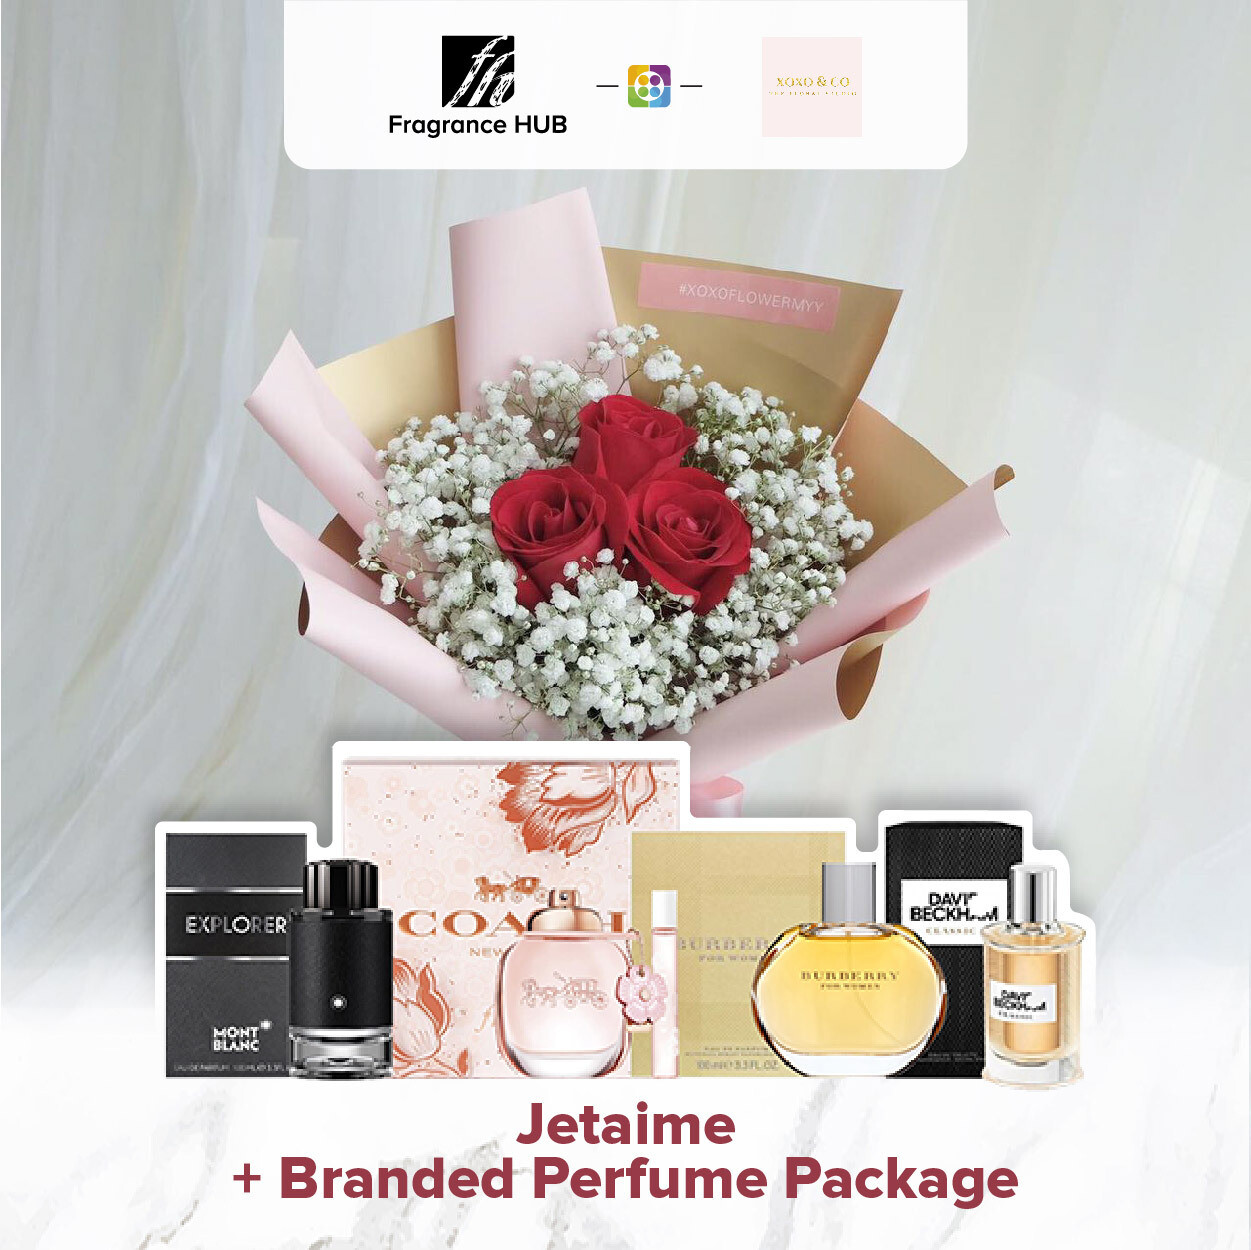 Jetaime + Fragrance Hub Branded Perfume (By: XOXO The Floral Studio from Miri)